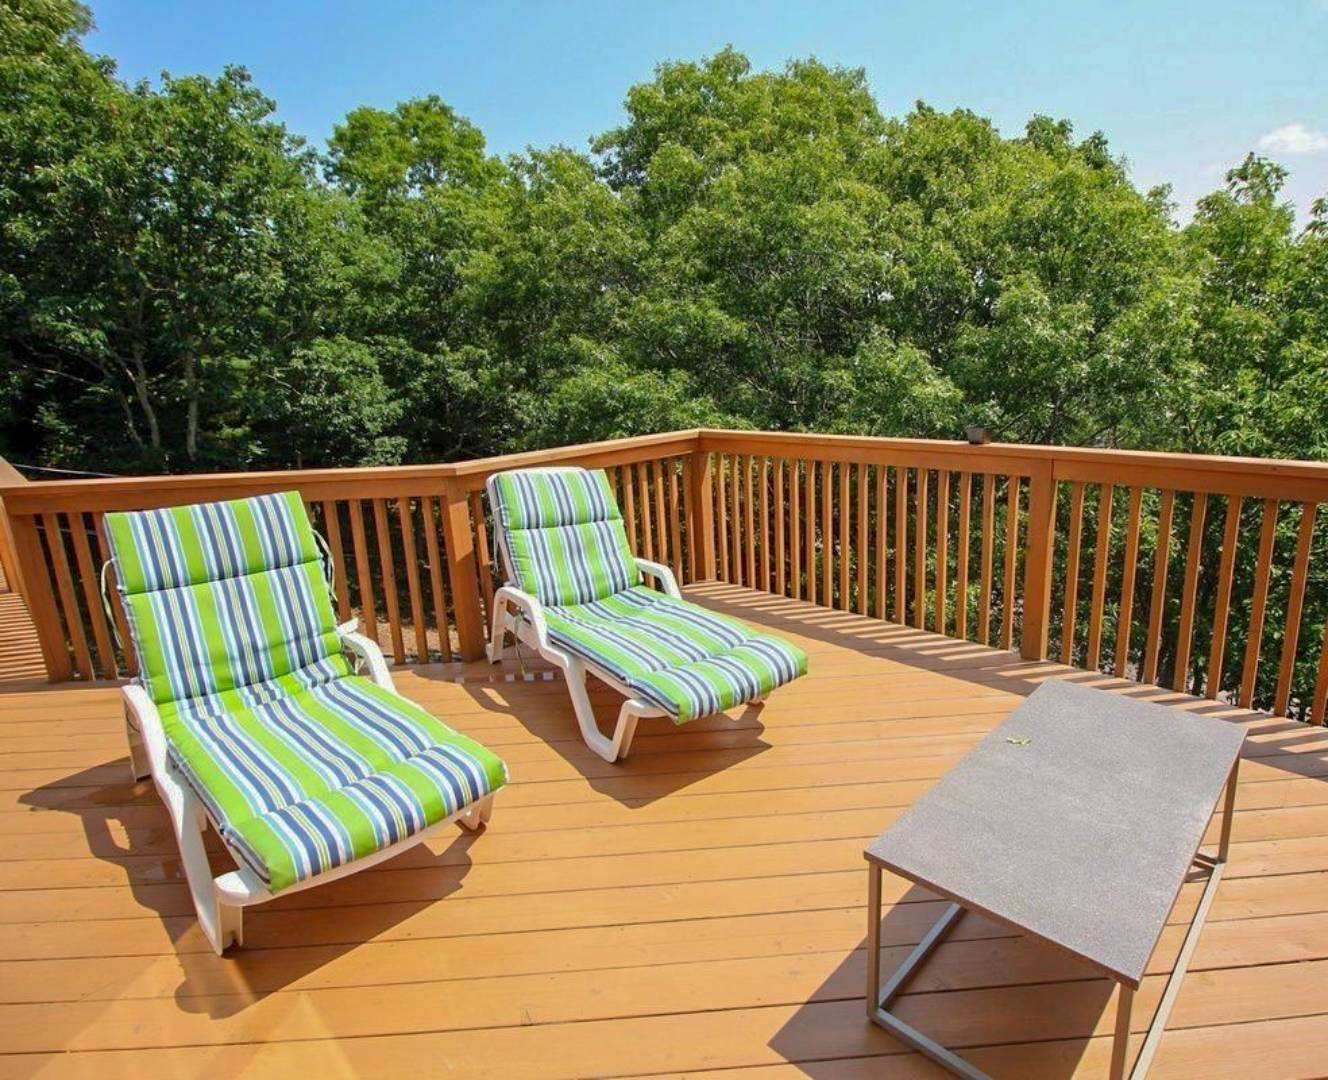 3. Single Family Home at Sag Harbor 4 Bedroom Close To Long Beach! Sag Harbor, NY 11963